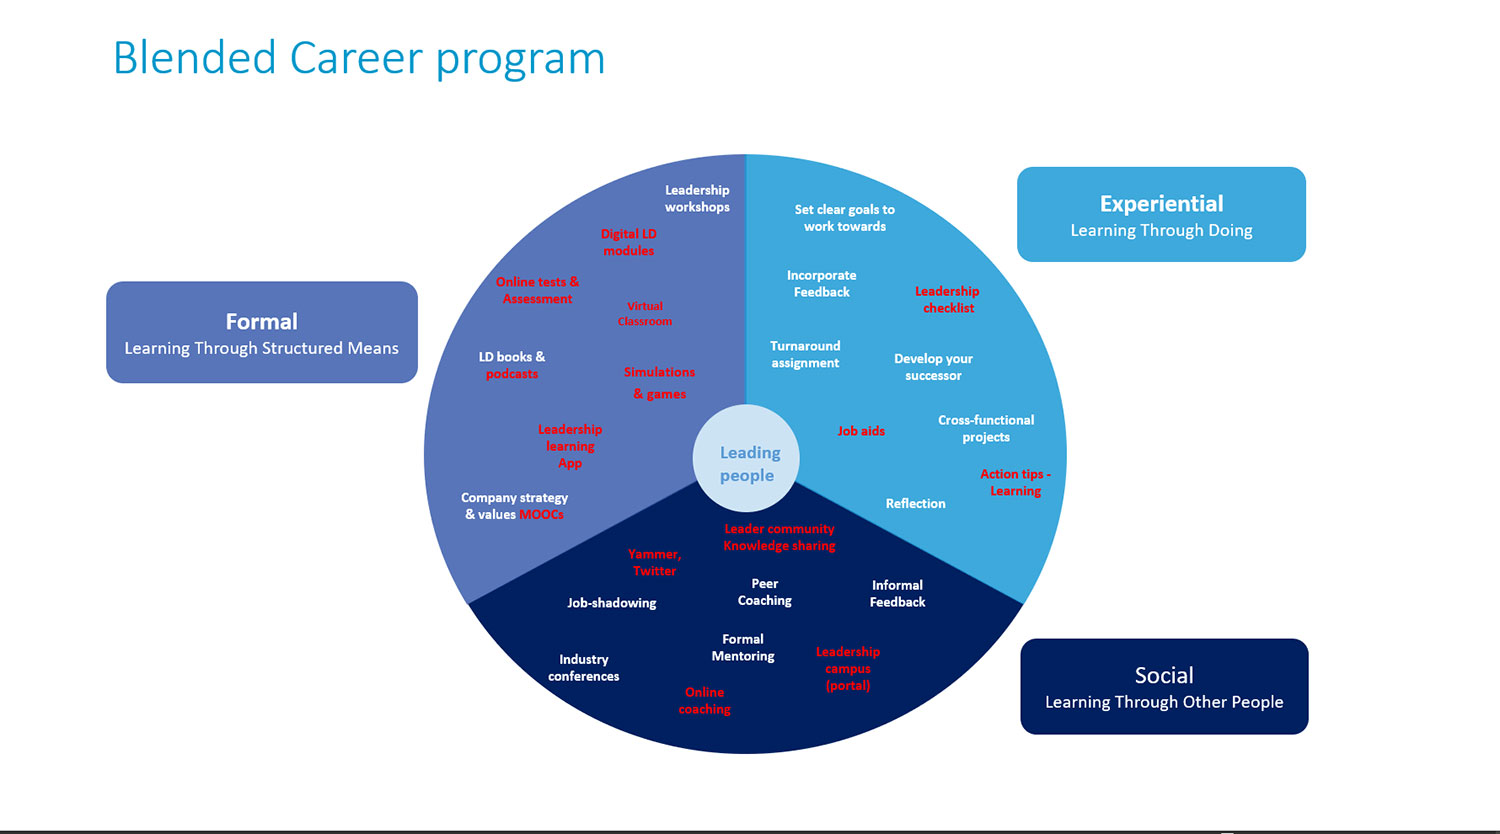 Blended Career Program